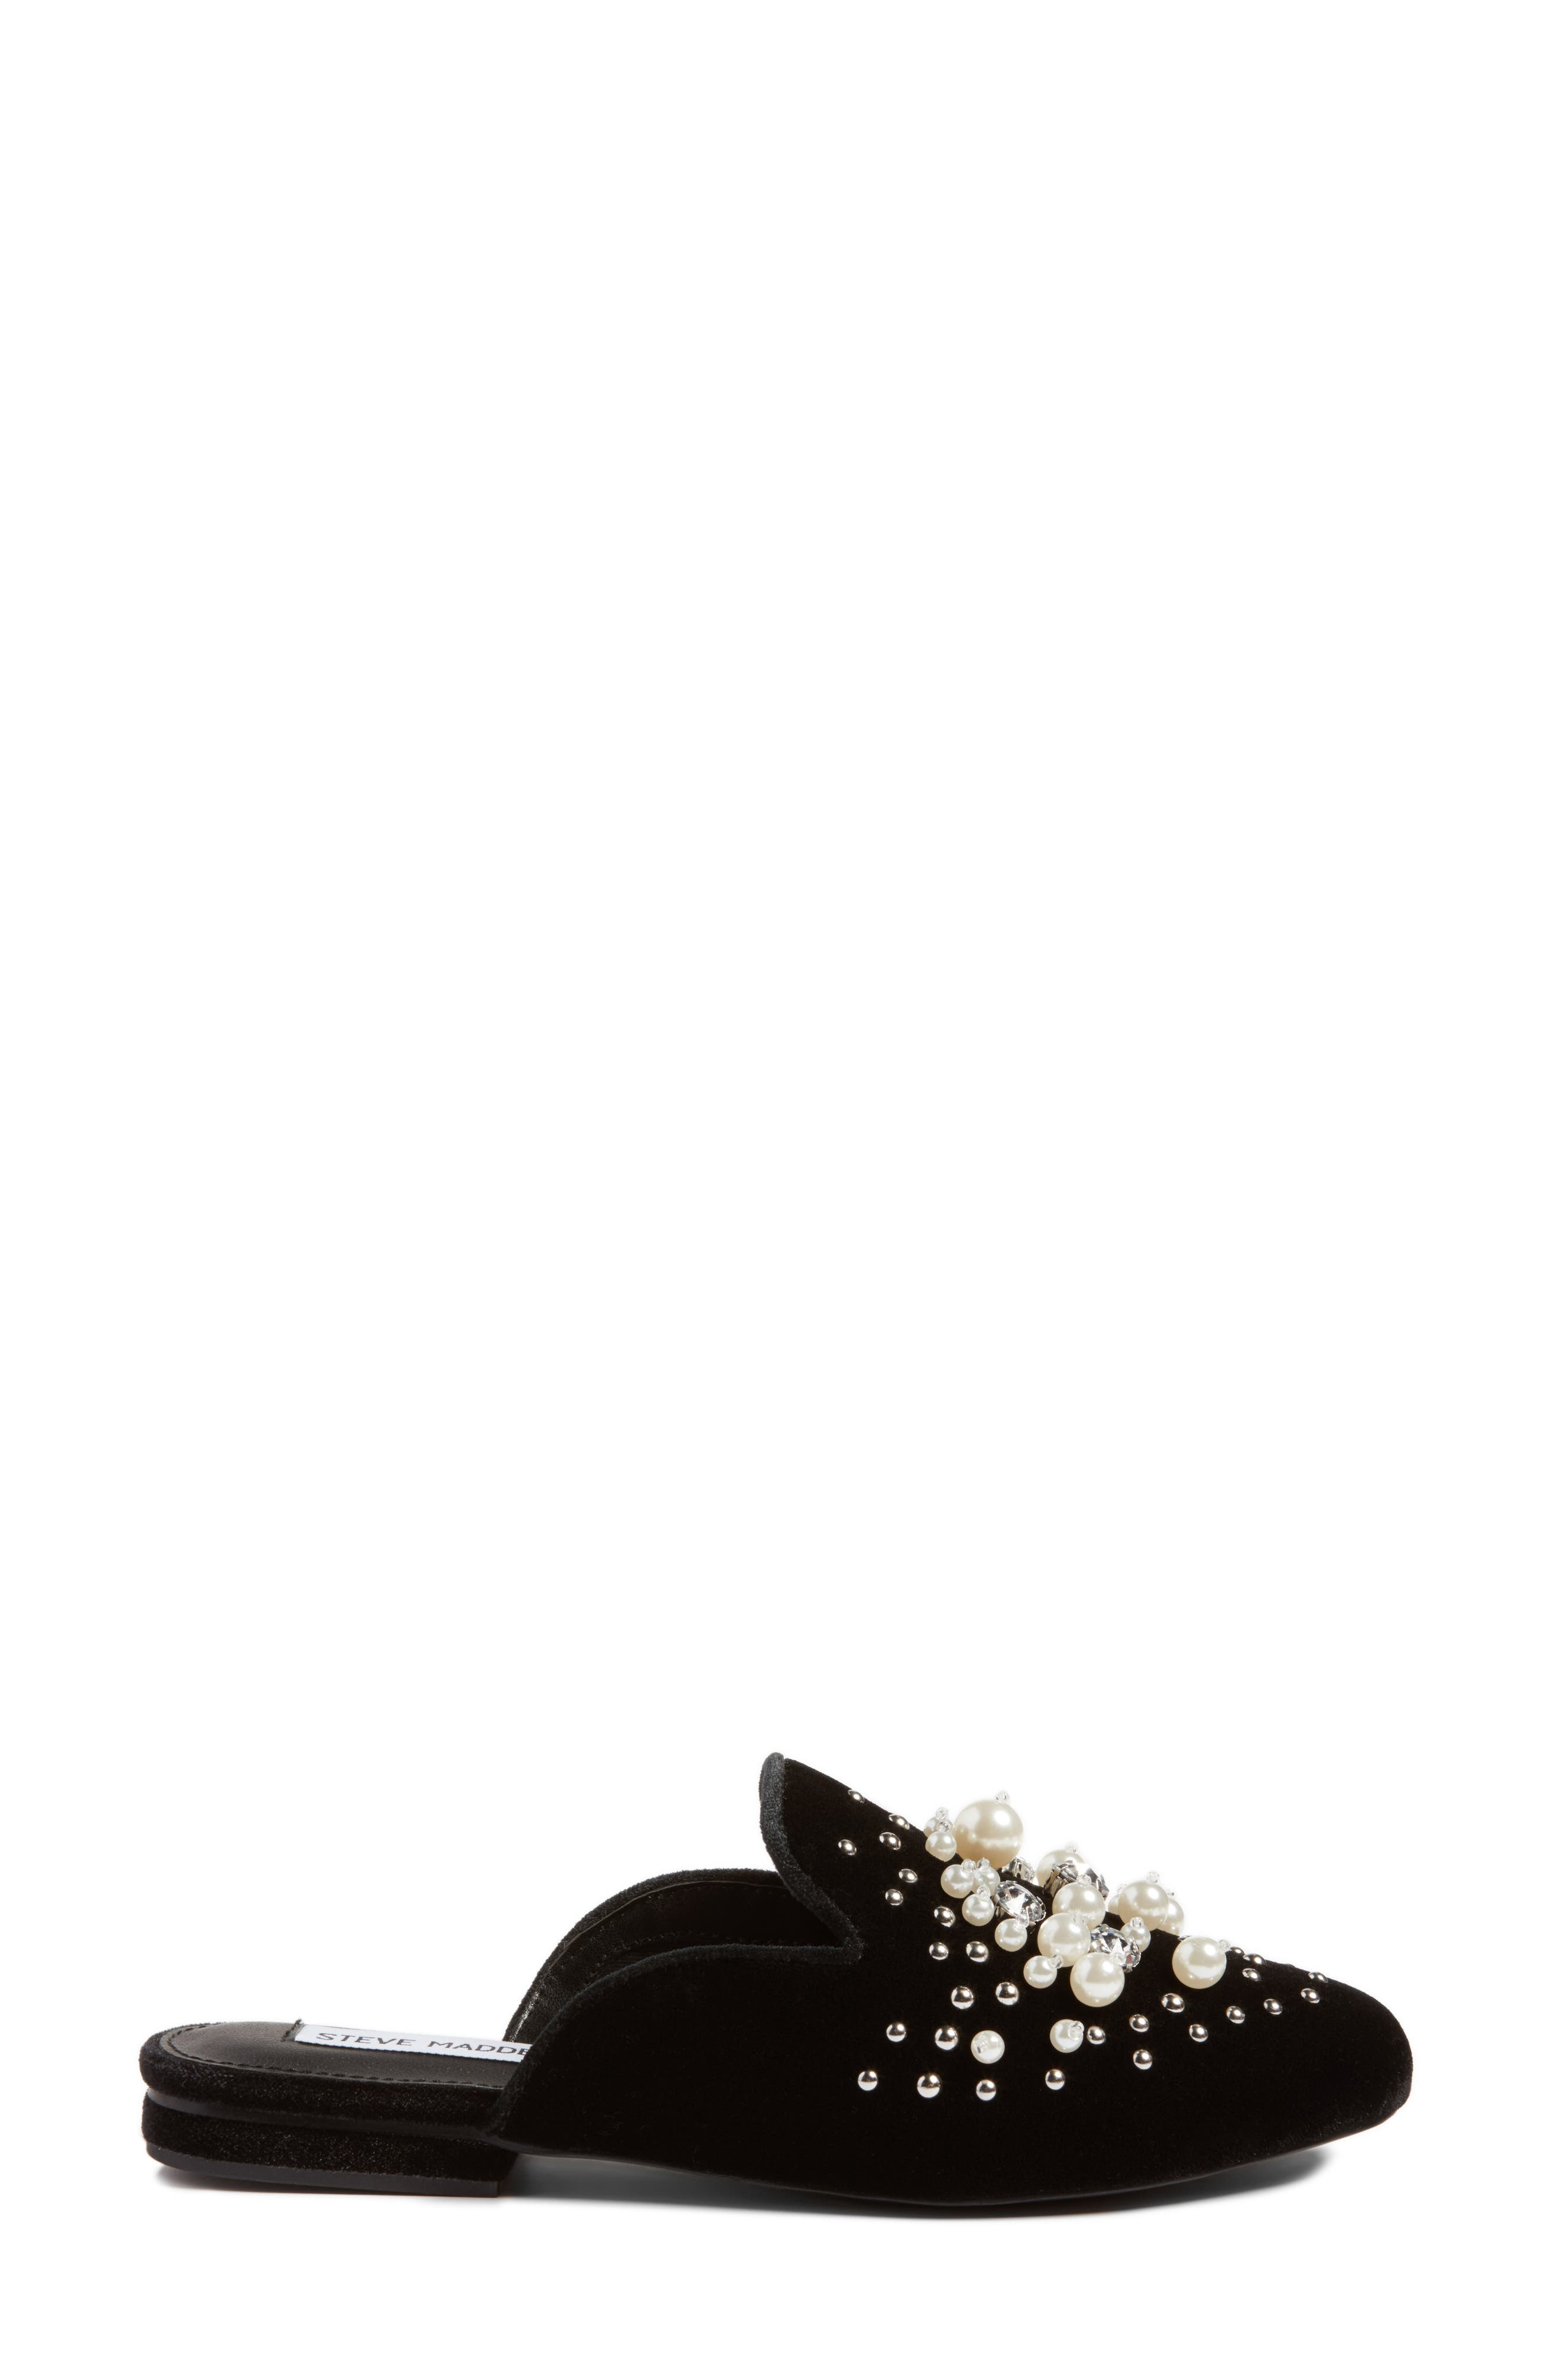 Alternate Image 3  - Steve Madden Imitation Pearl Embellished Mule (Women)